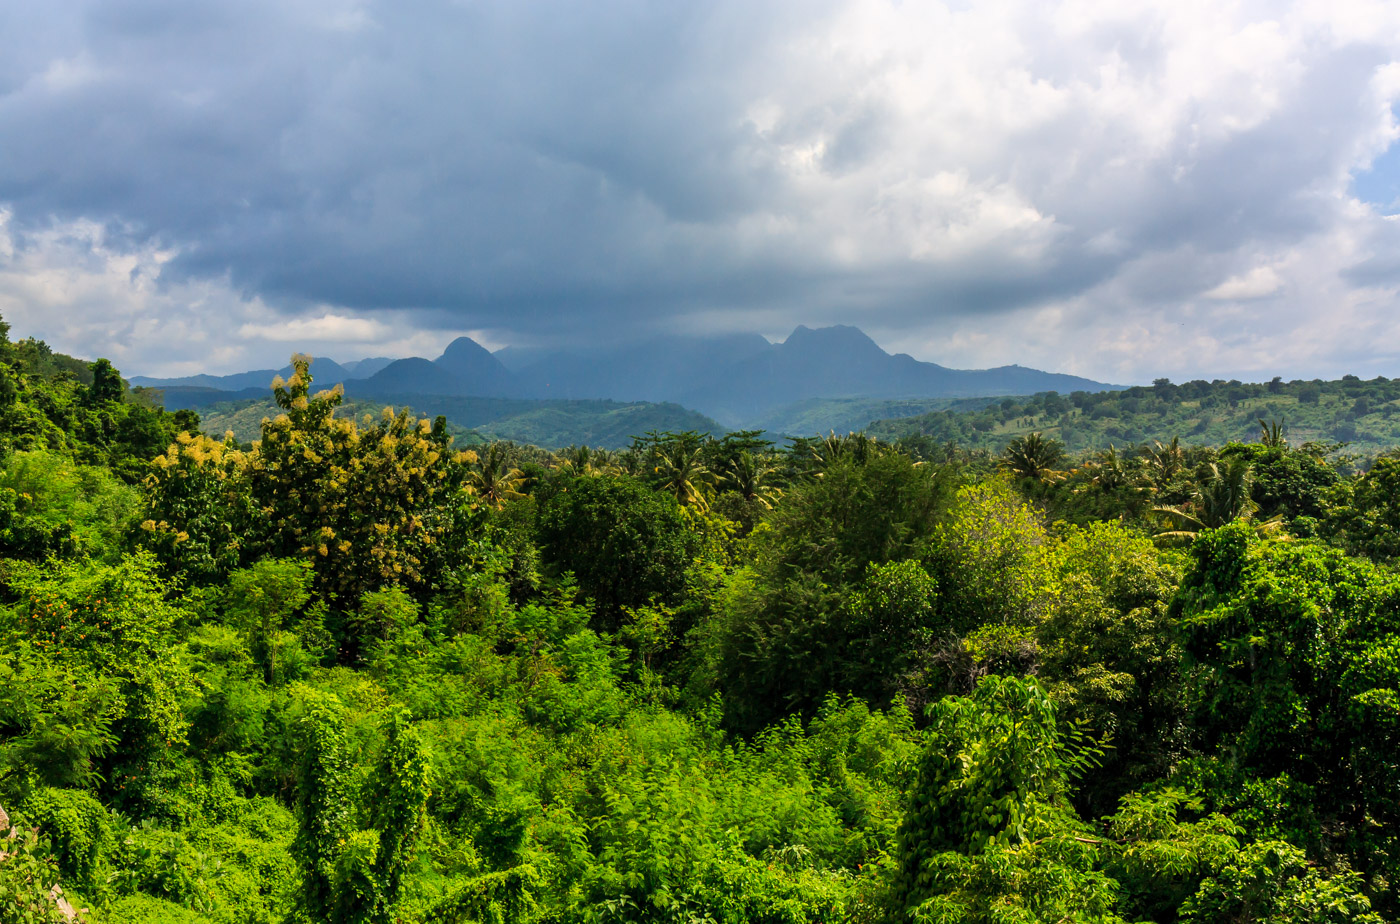 Mountains over the jungle.